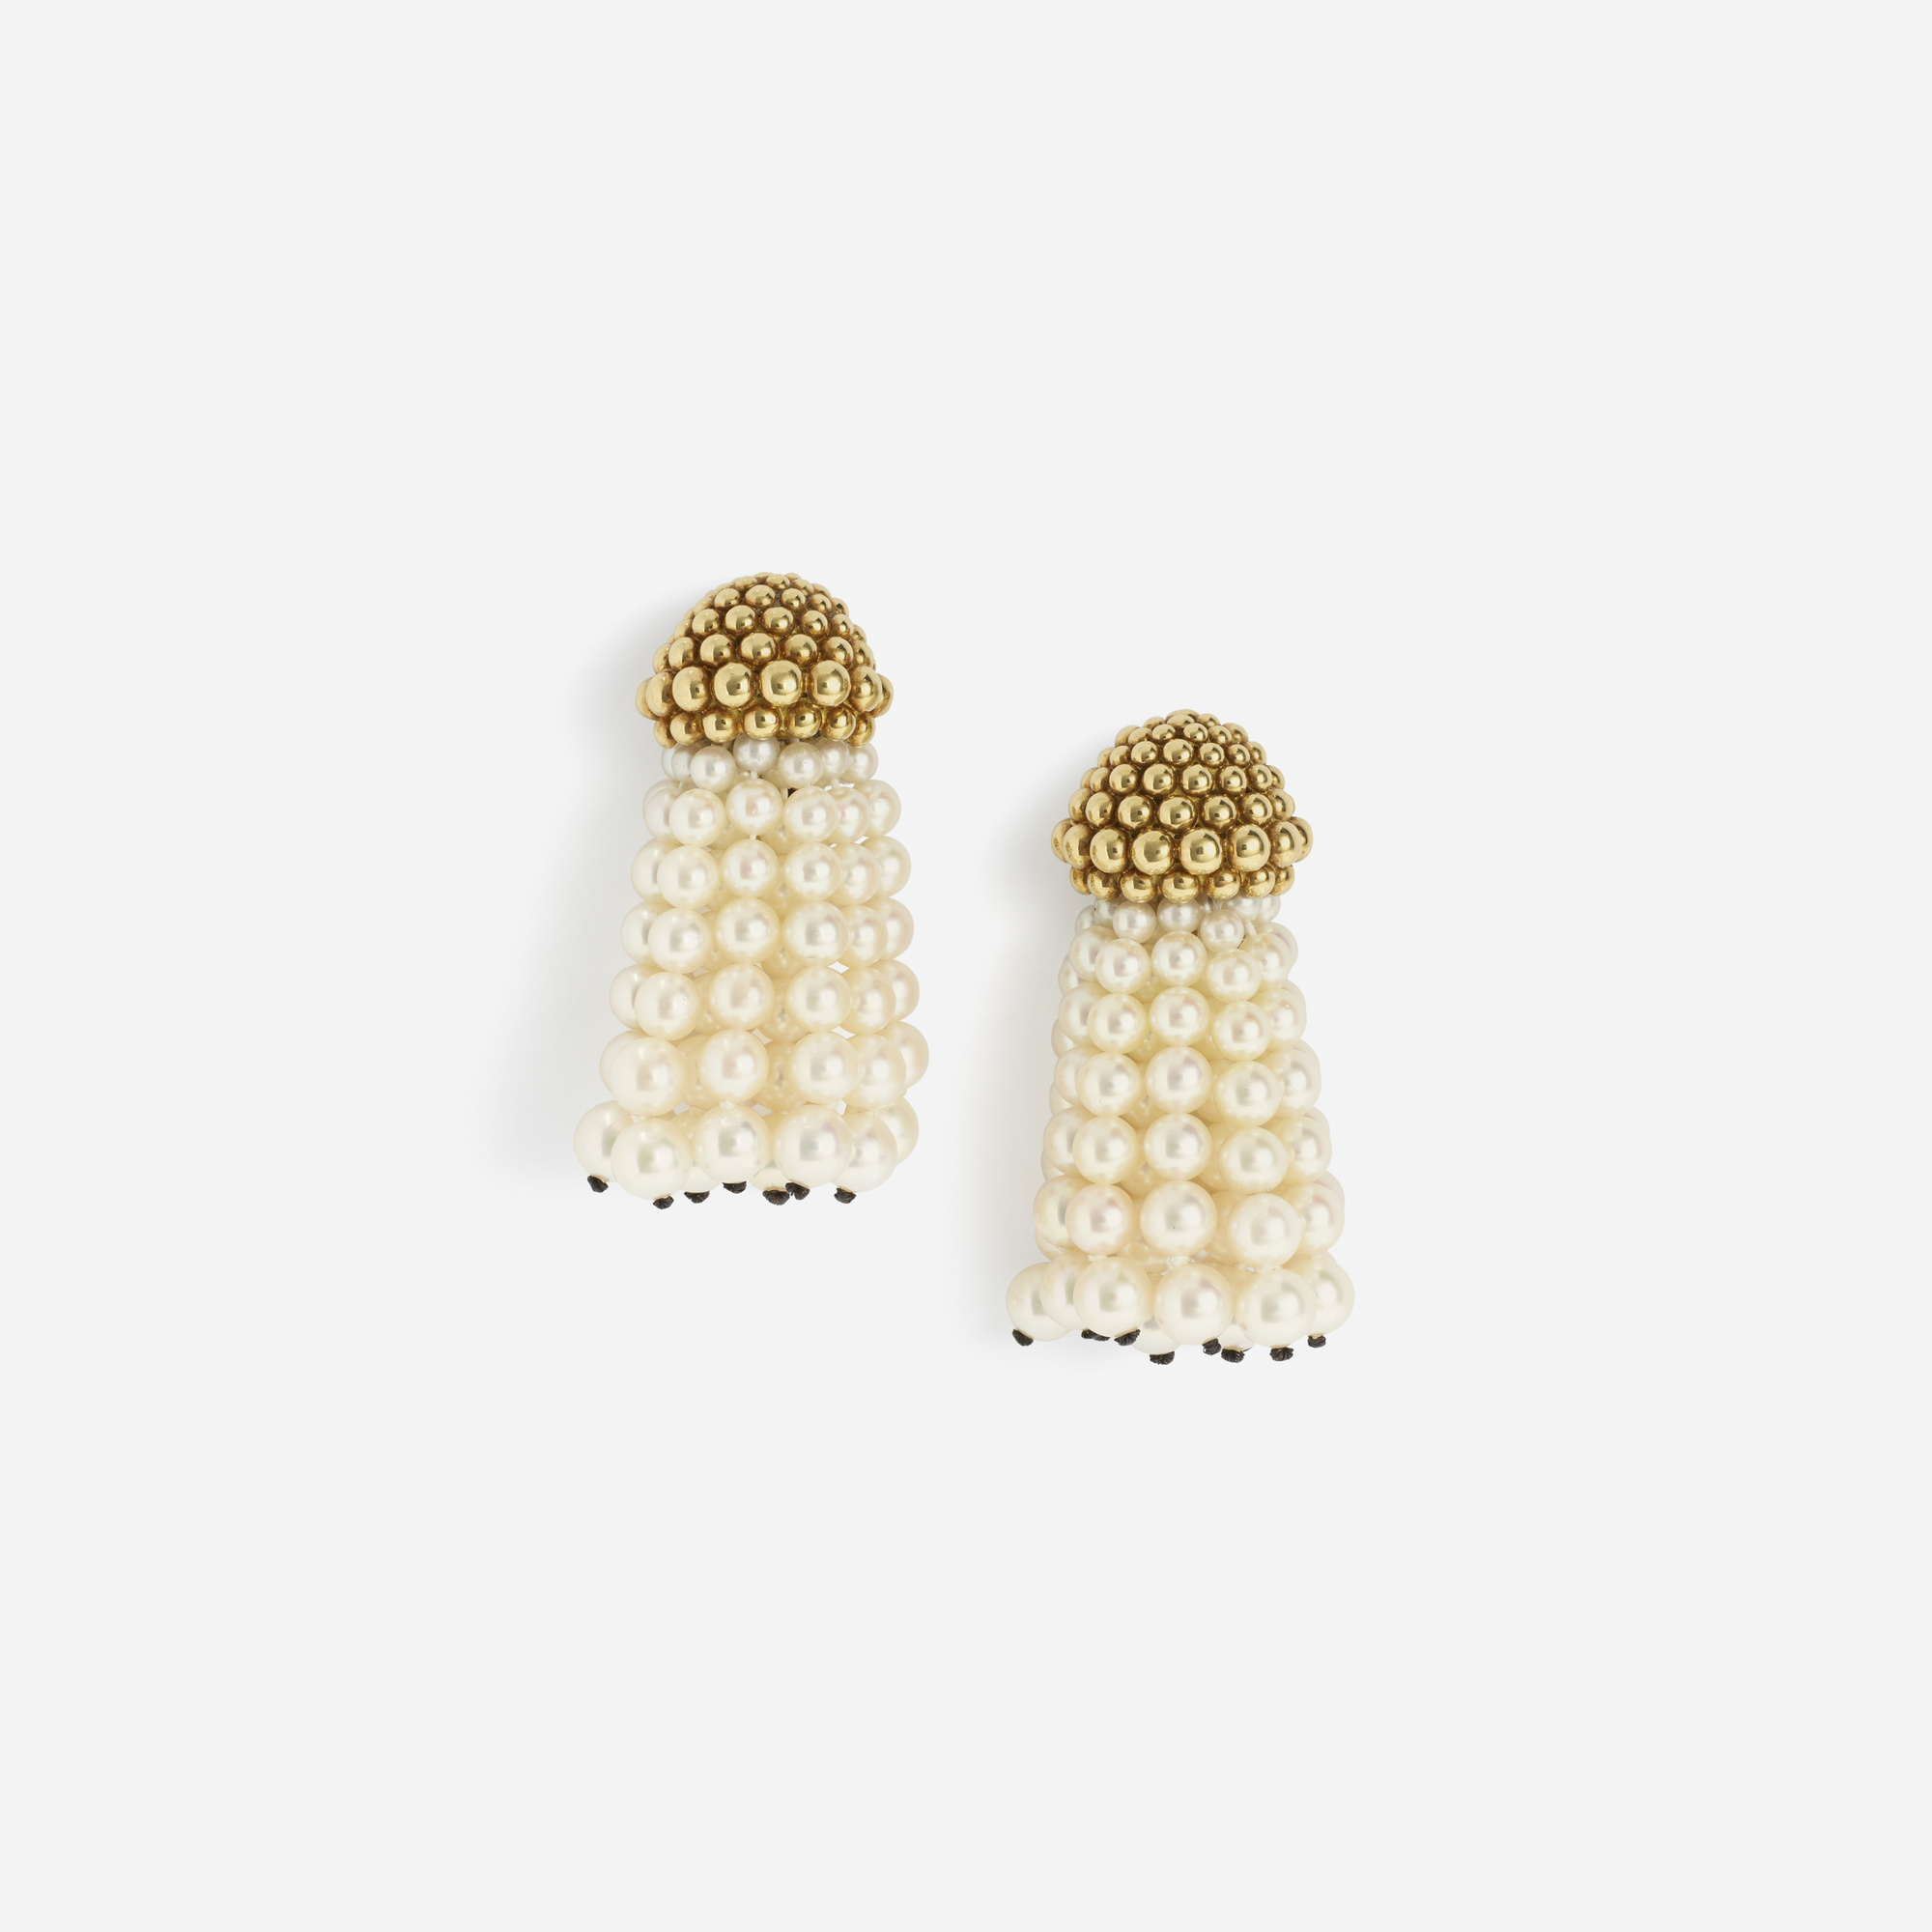 181: Chanel / A pair of gold and pearl earrings (1 of 1)